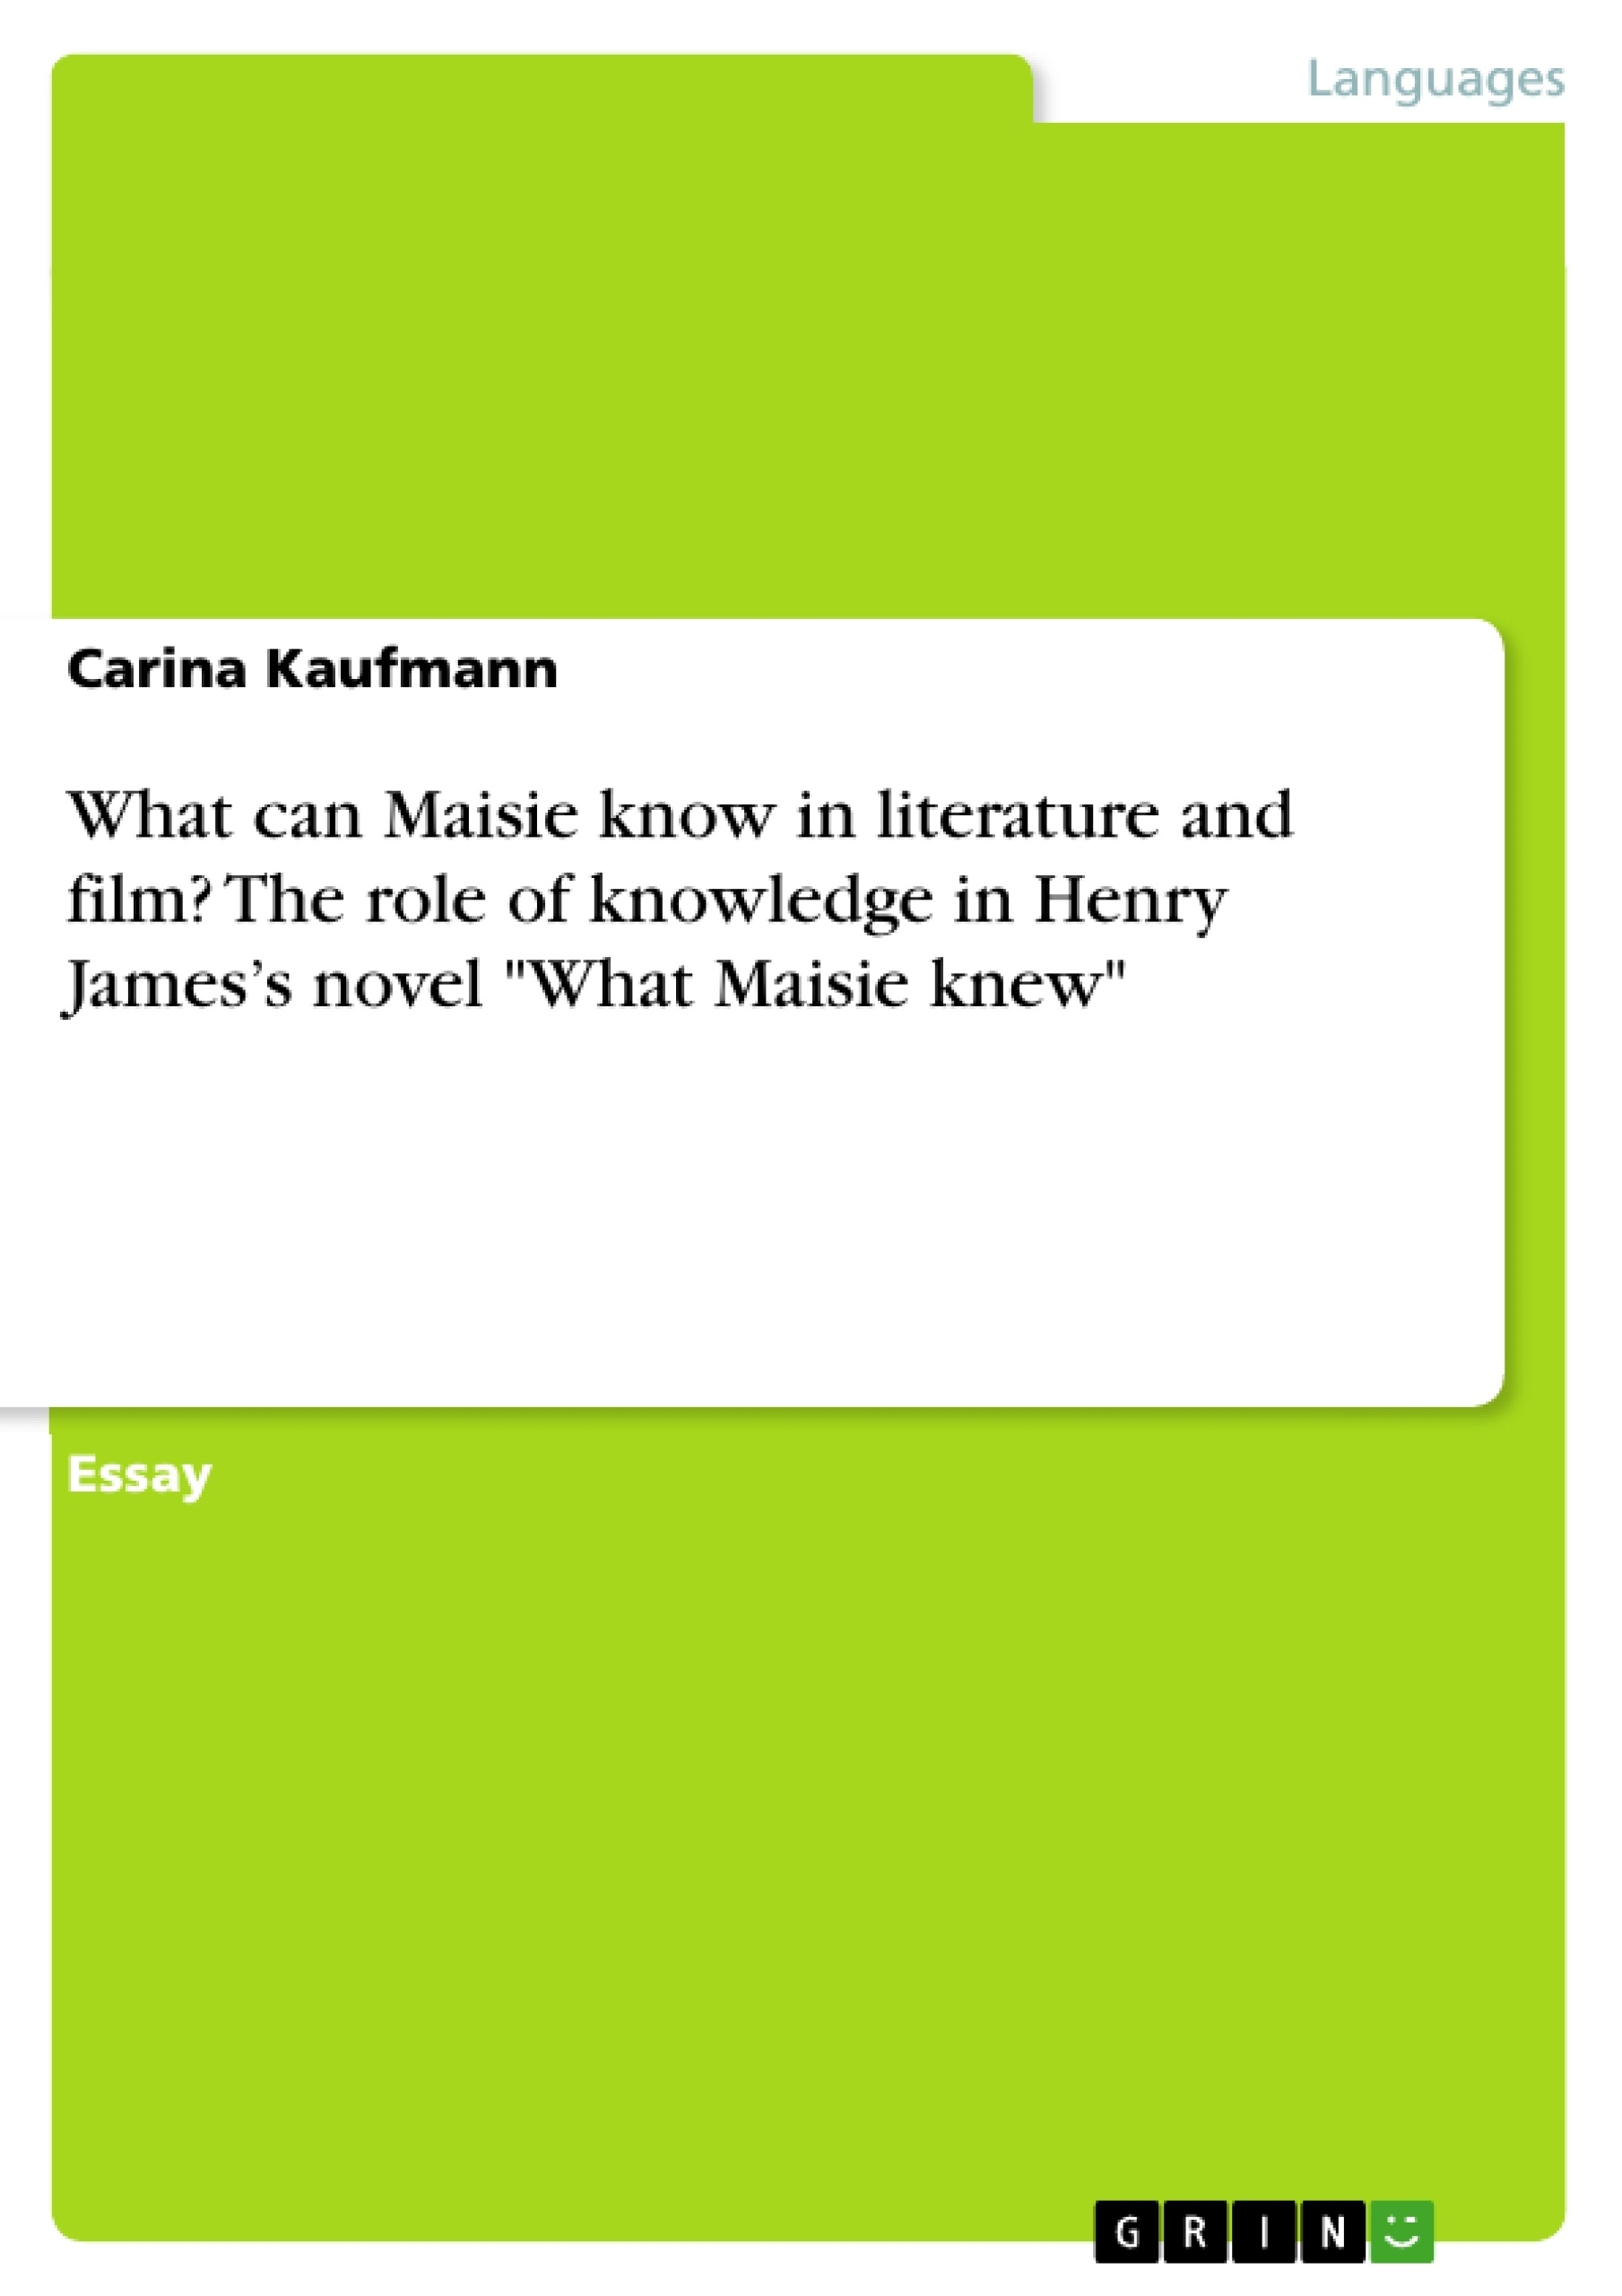 """Title: What can Maisie know in literature and film? The role of knowledge in Henry James's novel """"What Maisie knew"""""""